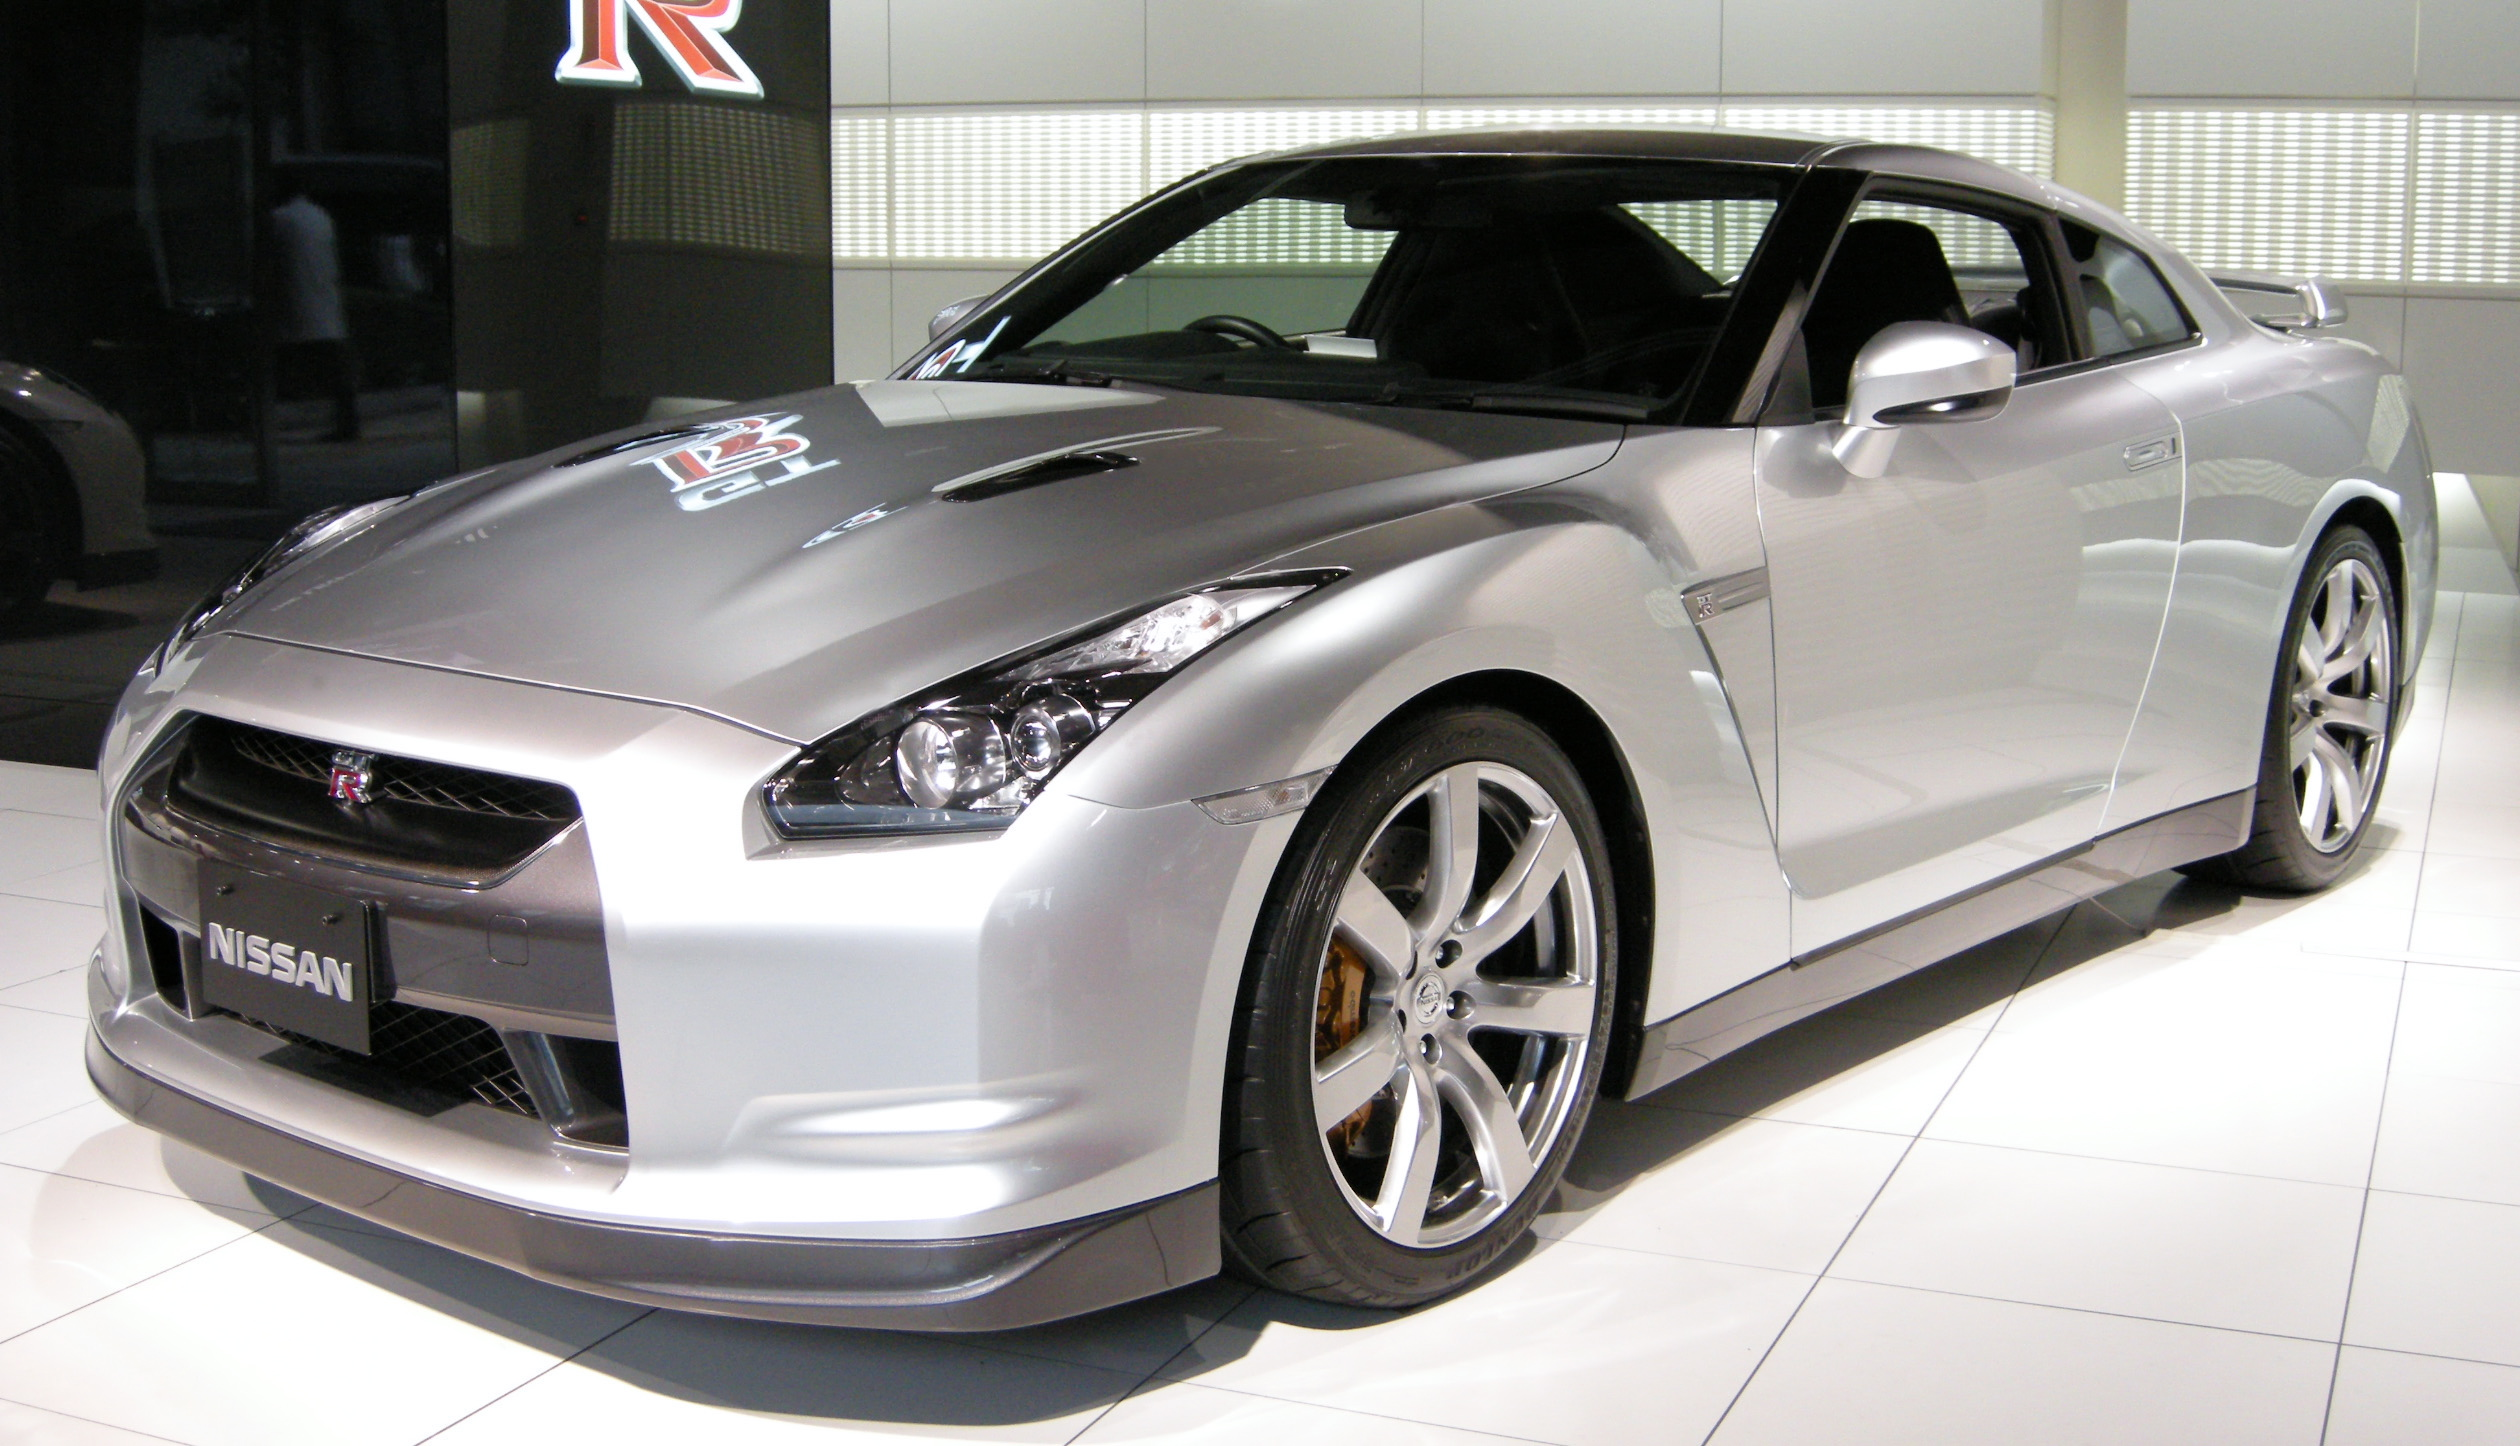 cars nissan r35 gt - photo #31